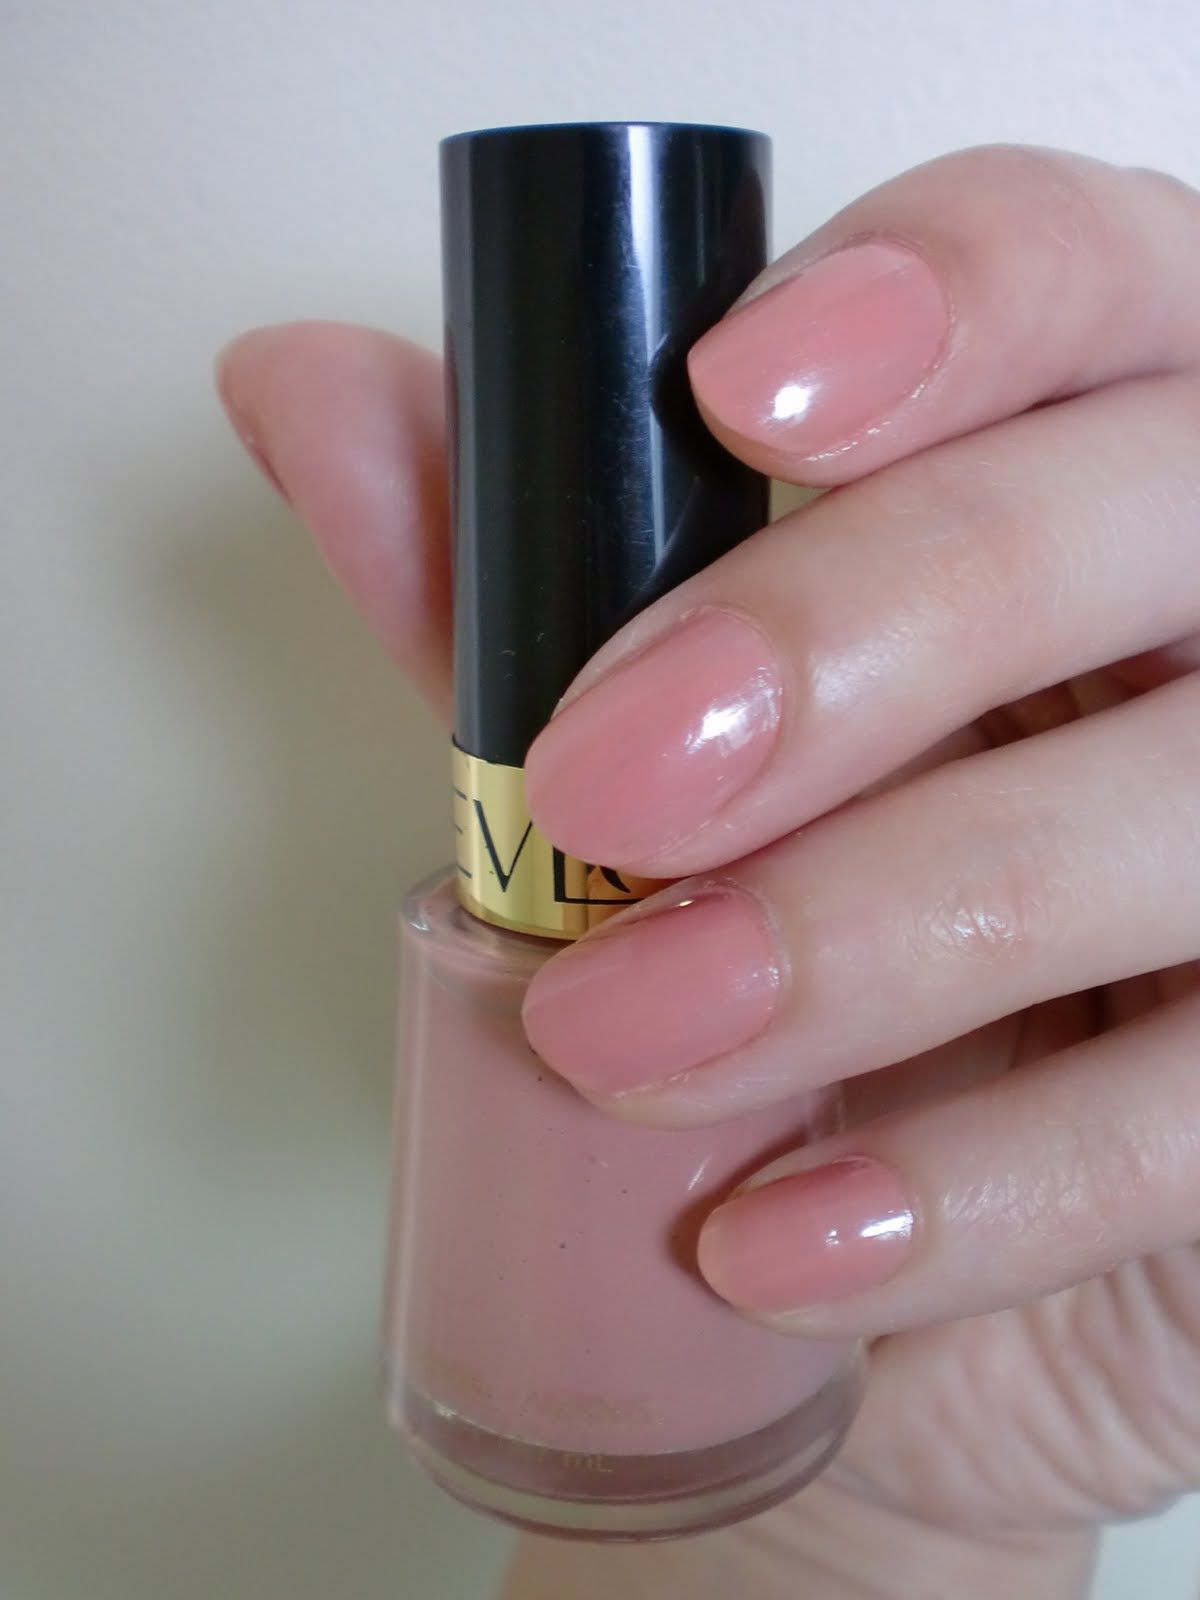 Revlon touch of mauve nails pinterest mauve and revlon crystal luvz revlon nail polish in gray suede touch of mauve nvjuhfo Image collections